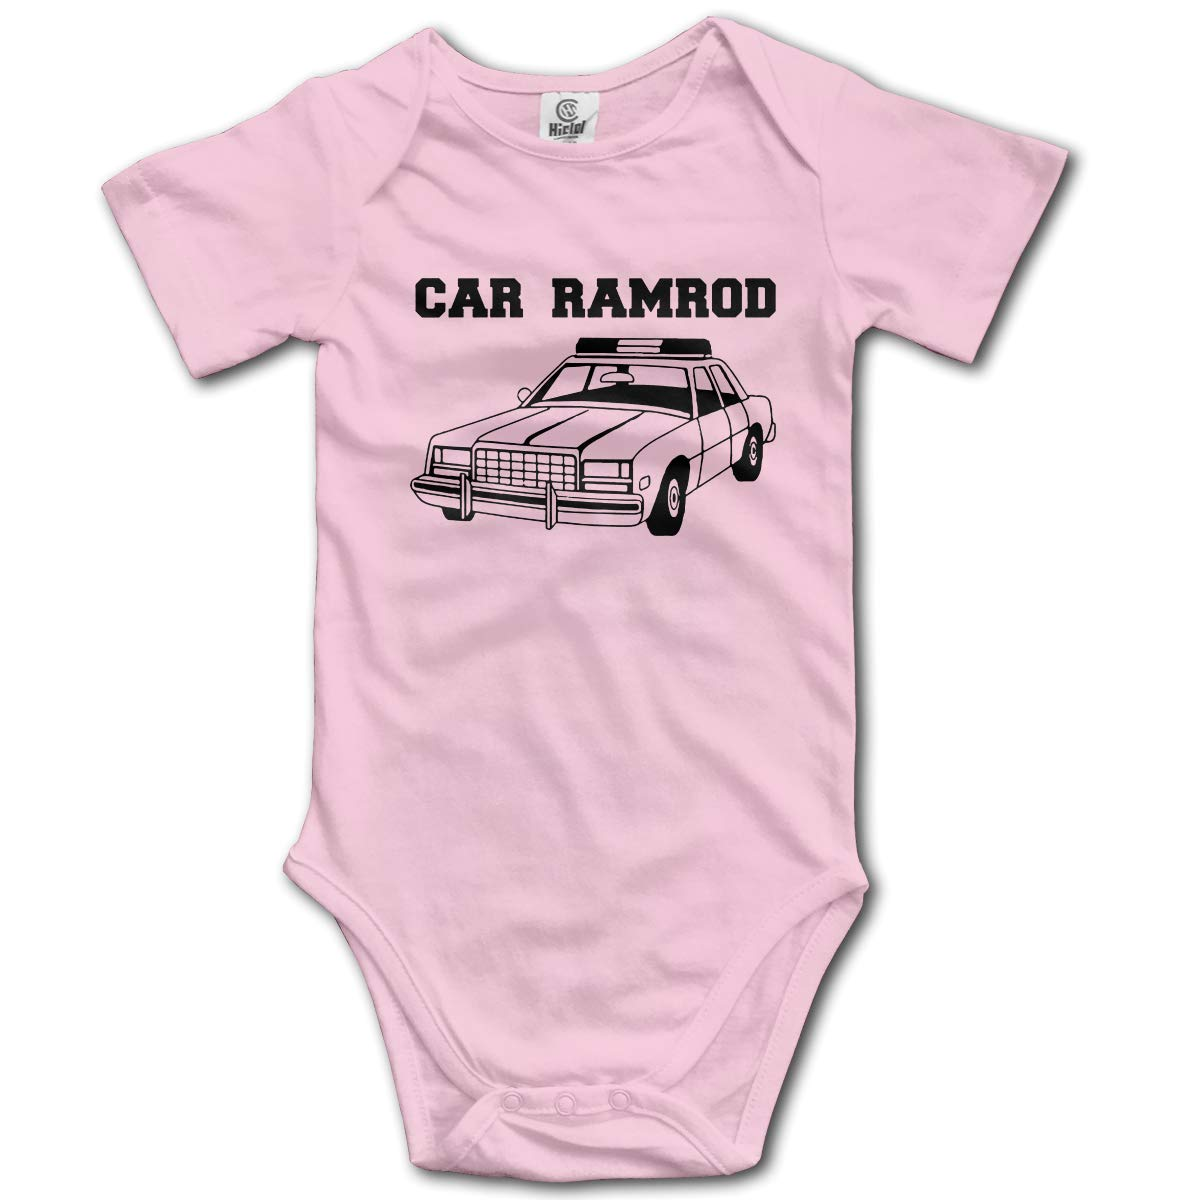 CHETI CAR Ramrod Newborn Infant Toddler Baby Girls Boys Bodysuit Short Sleeve 0-24 MonthsGray